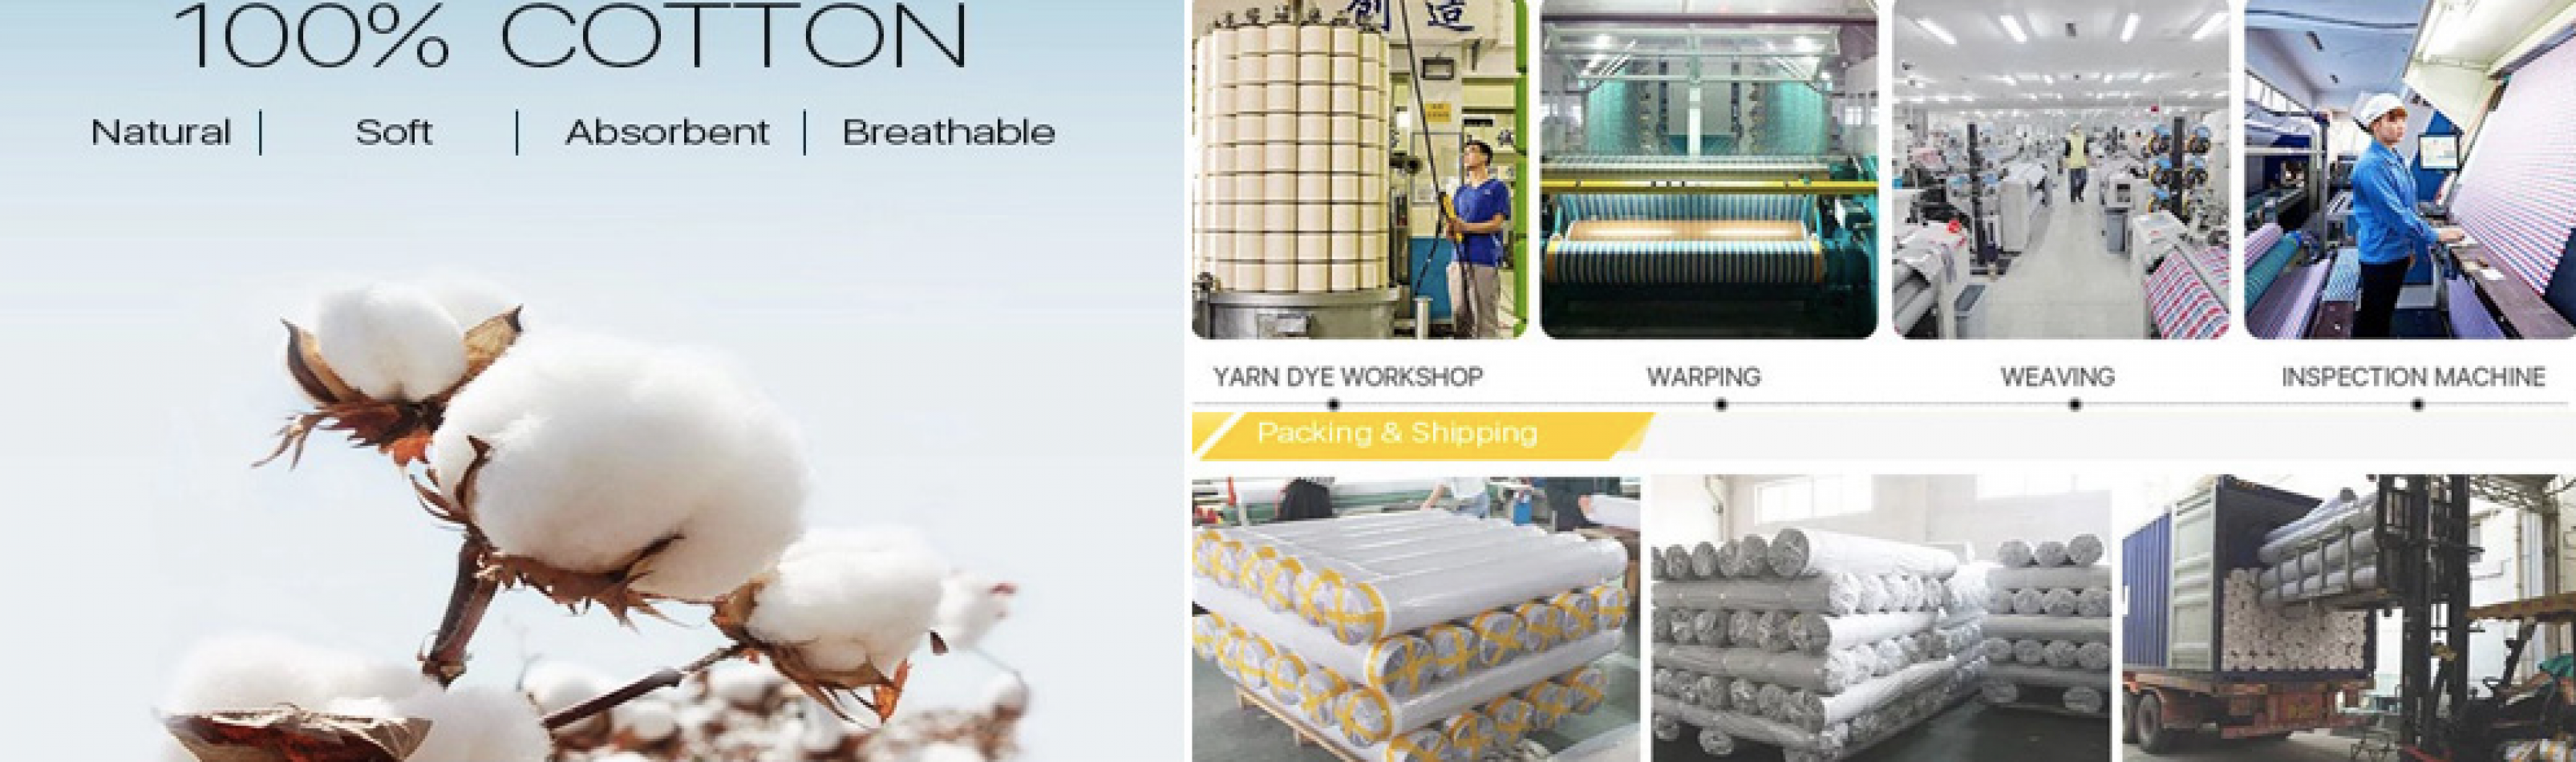 ZHONGSHAN TENGFENG TEXTILES CO., LTD.